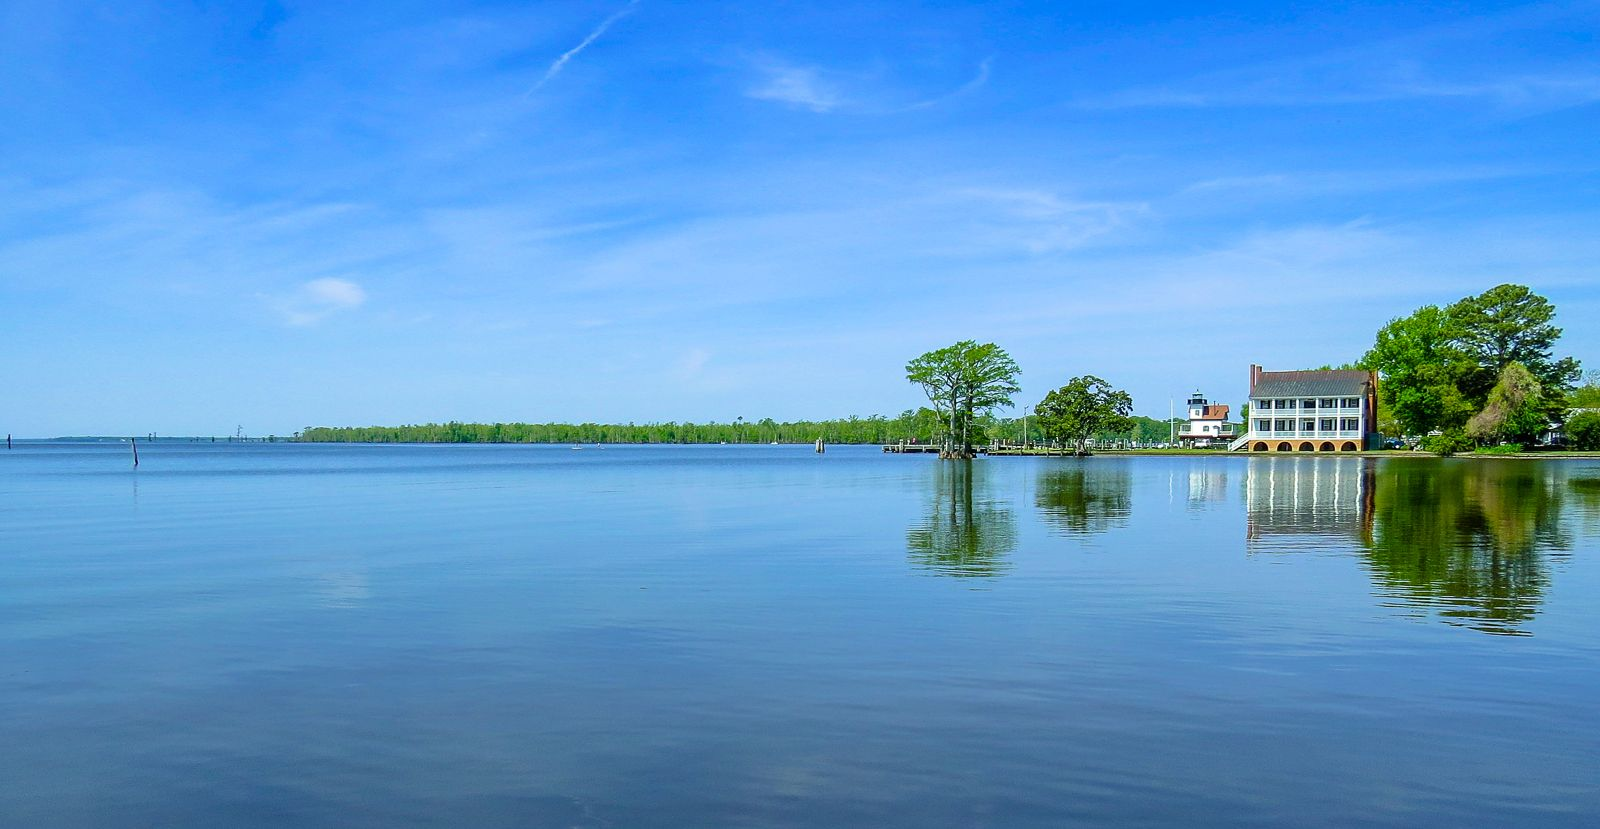 Picture Taken From The Waterfront Of Edenton Nc Beach Scenery Coast Landscape